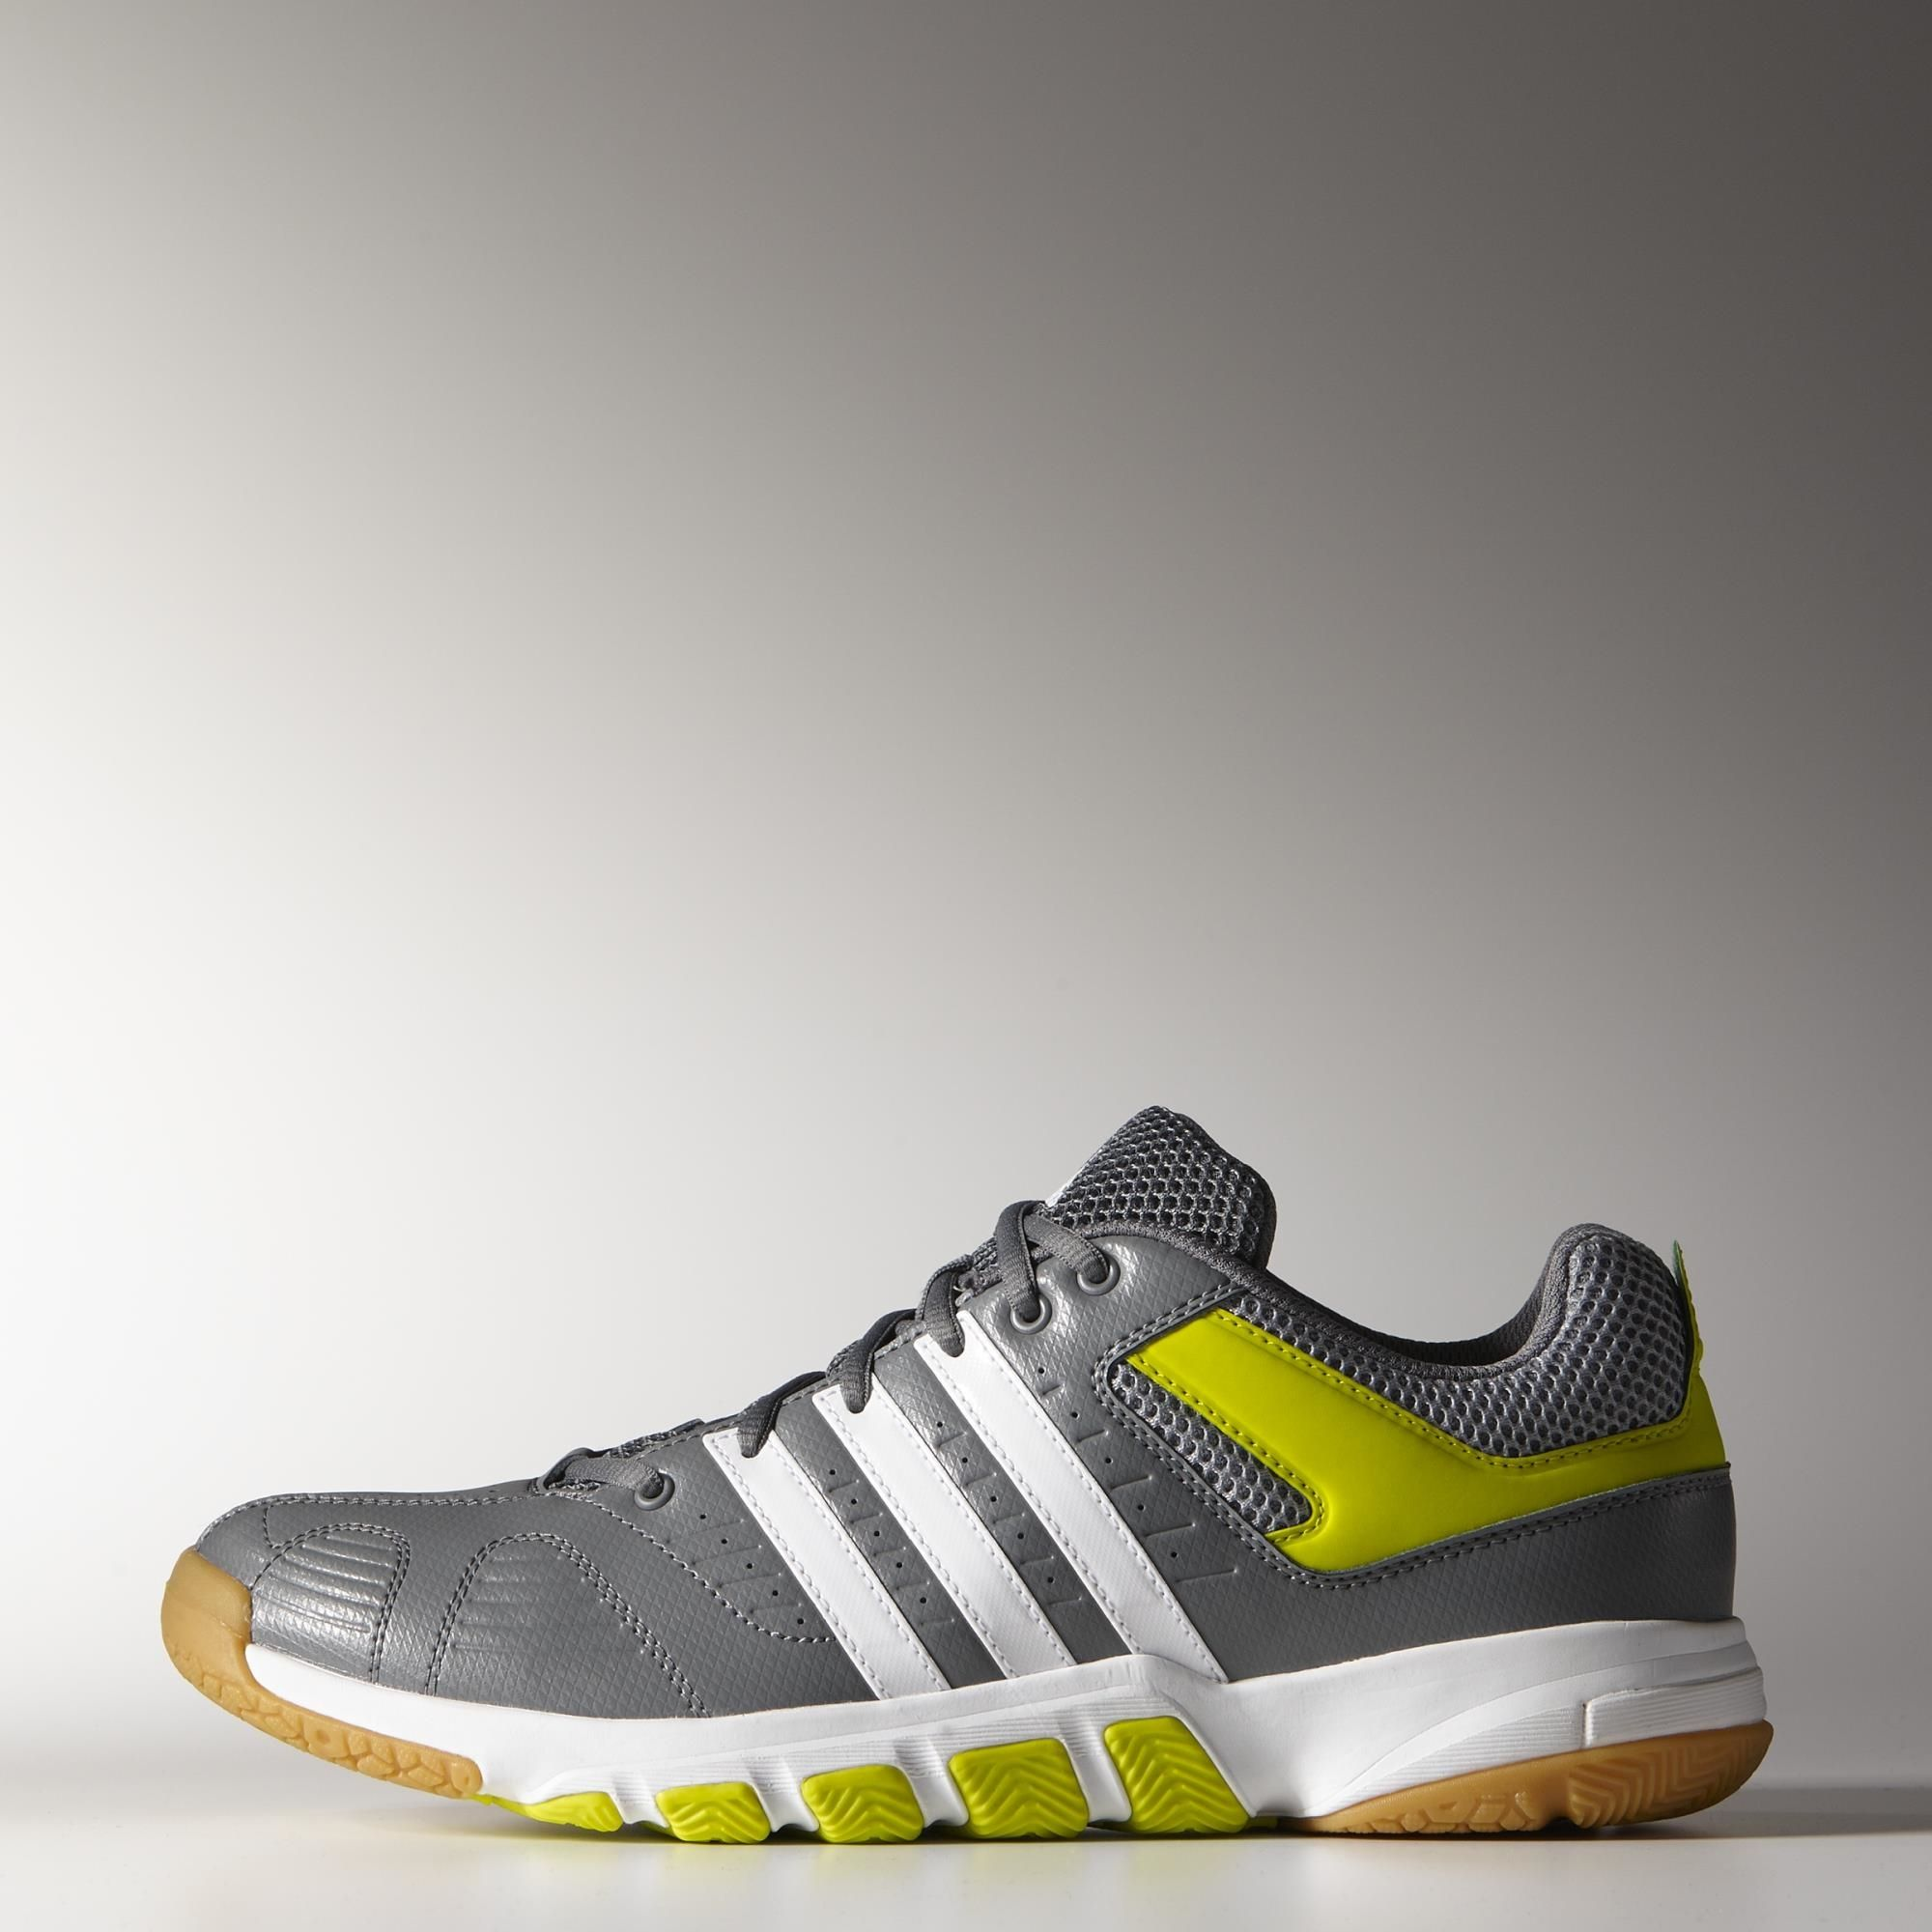 Quickforce 5 Shoes | adidas Badminton